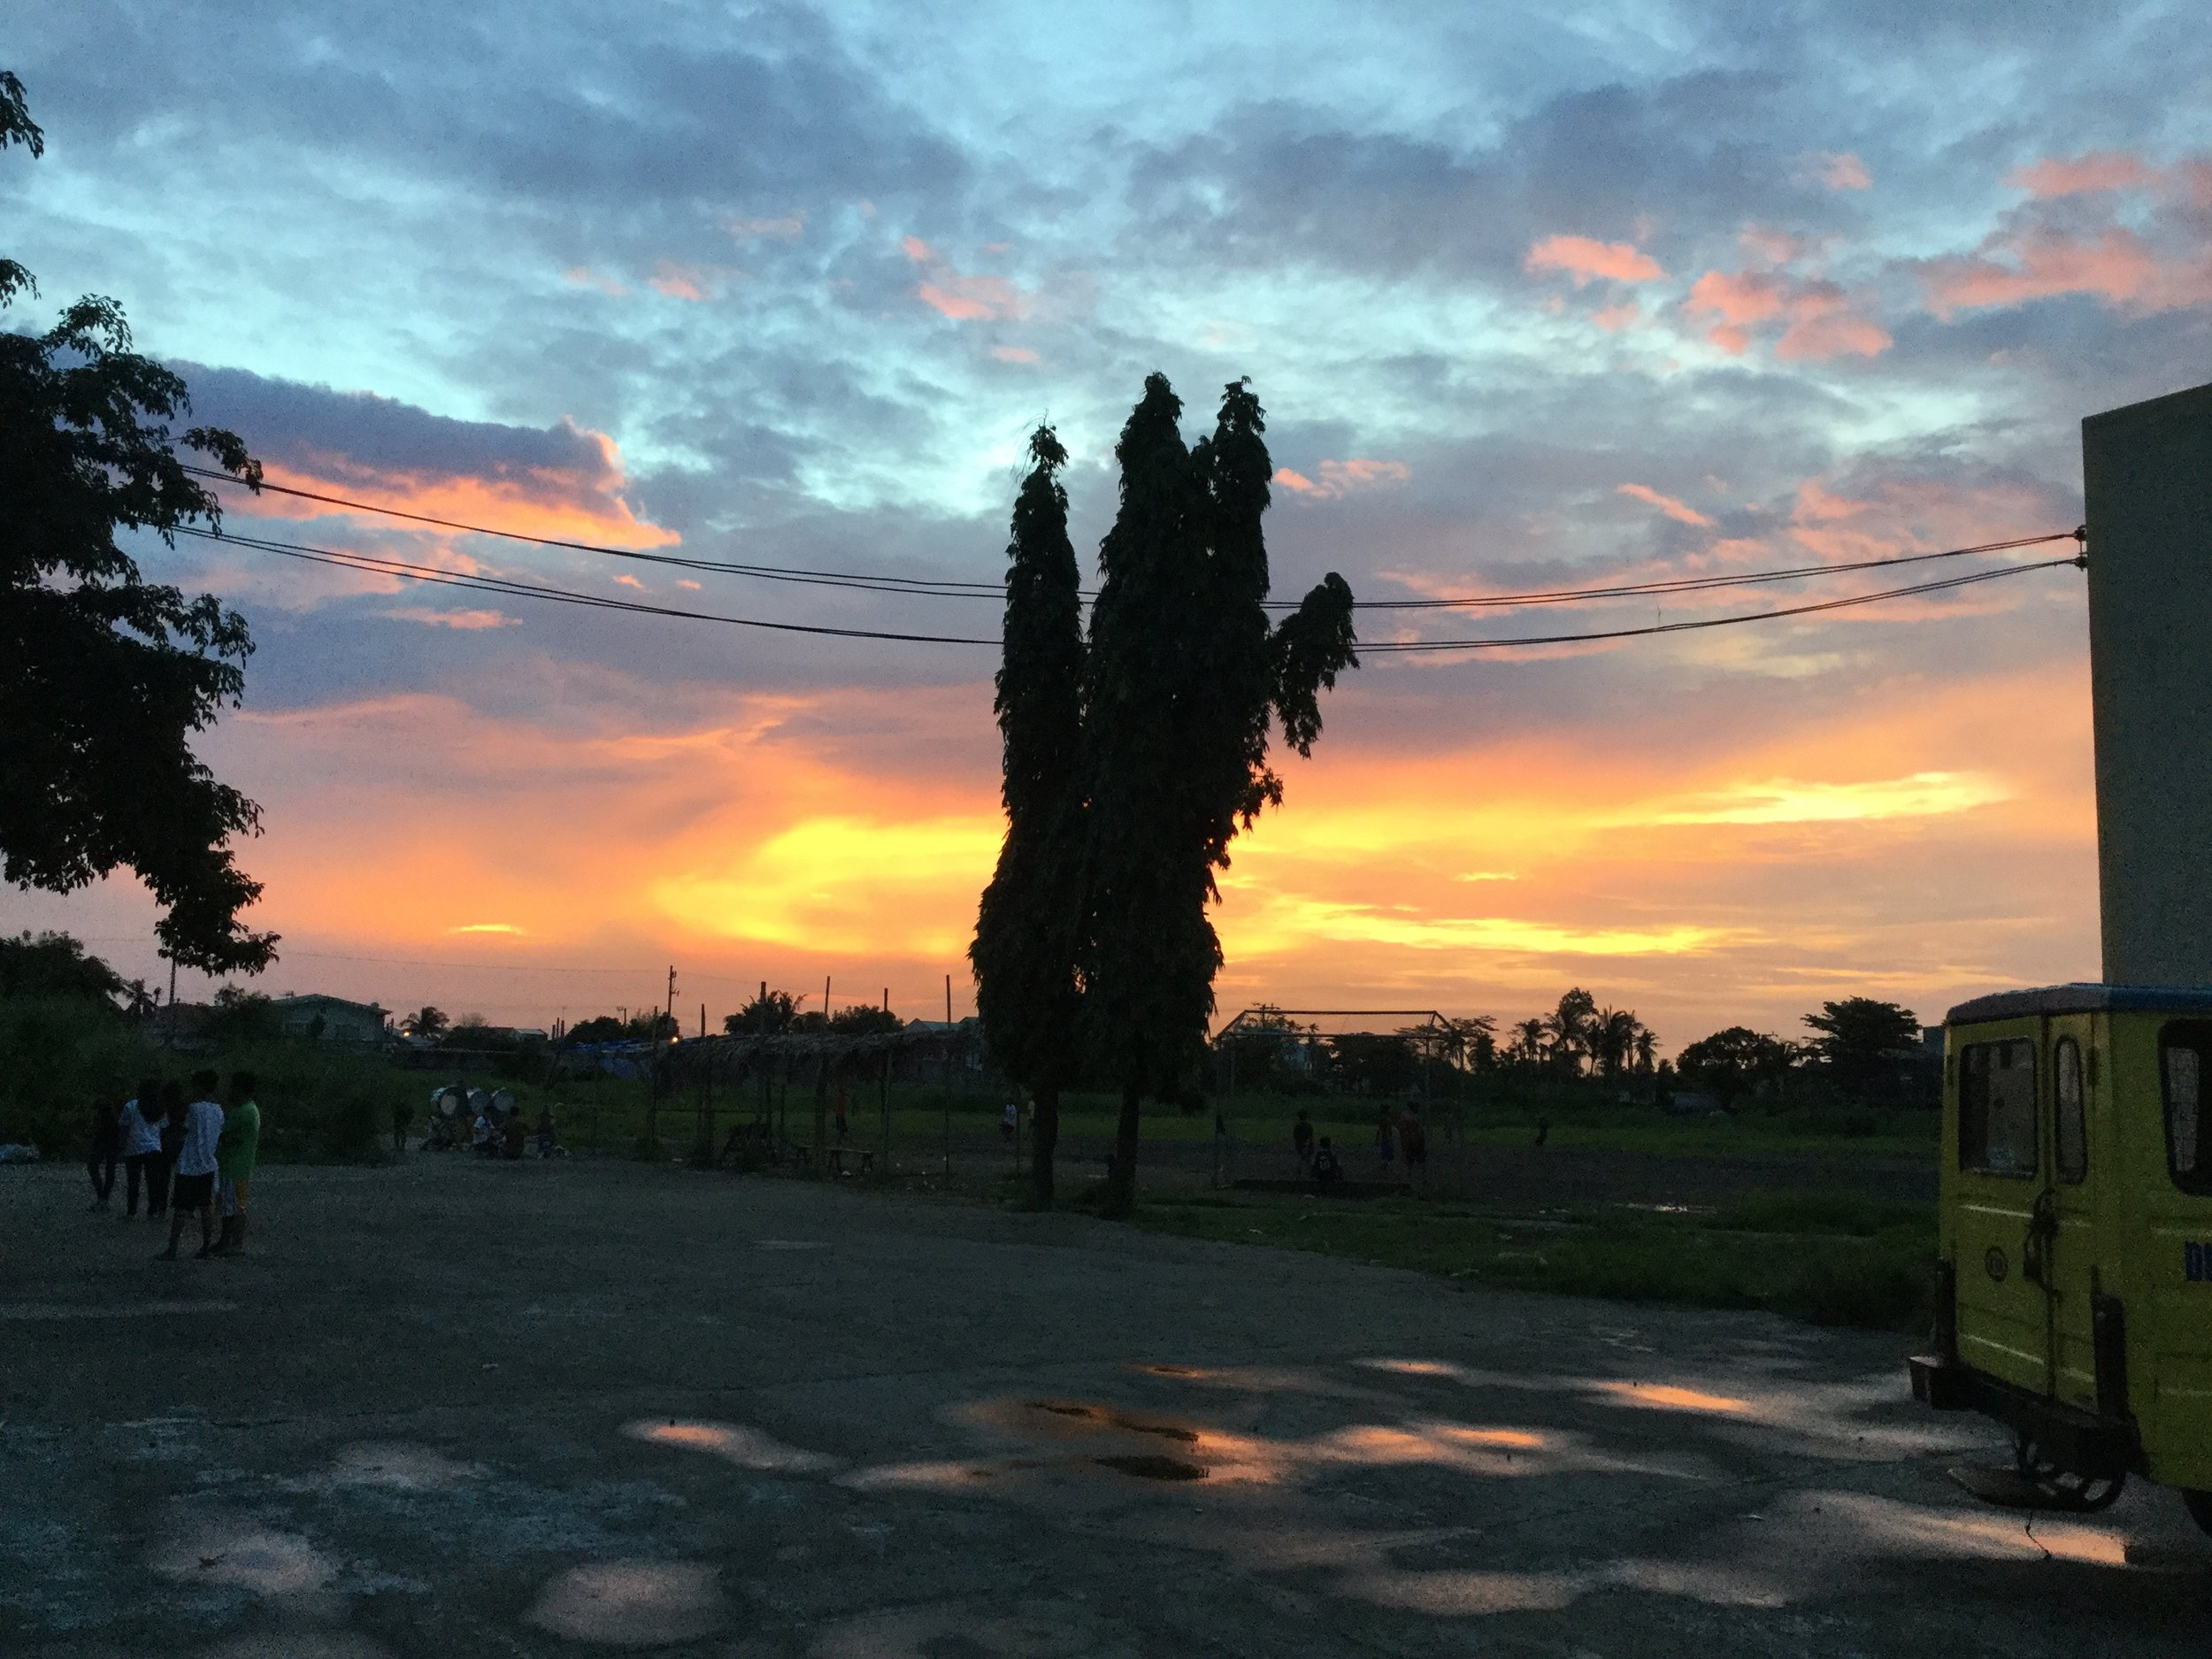 It's been a long time since the heyday of Cavite City's baseball diamond but who knows if something new can rise out of its grassy footprint?